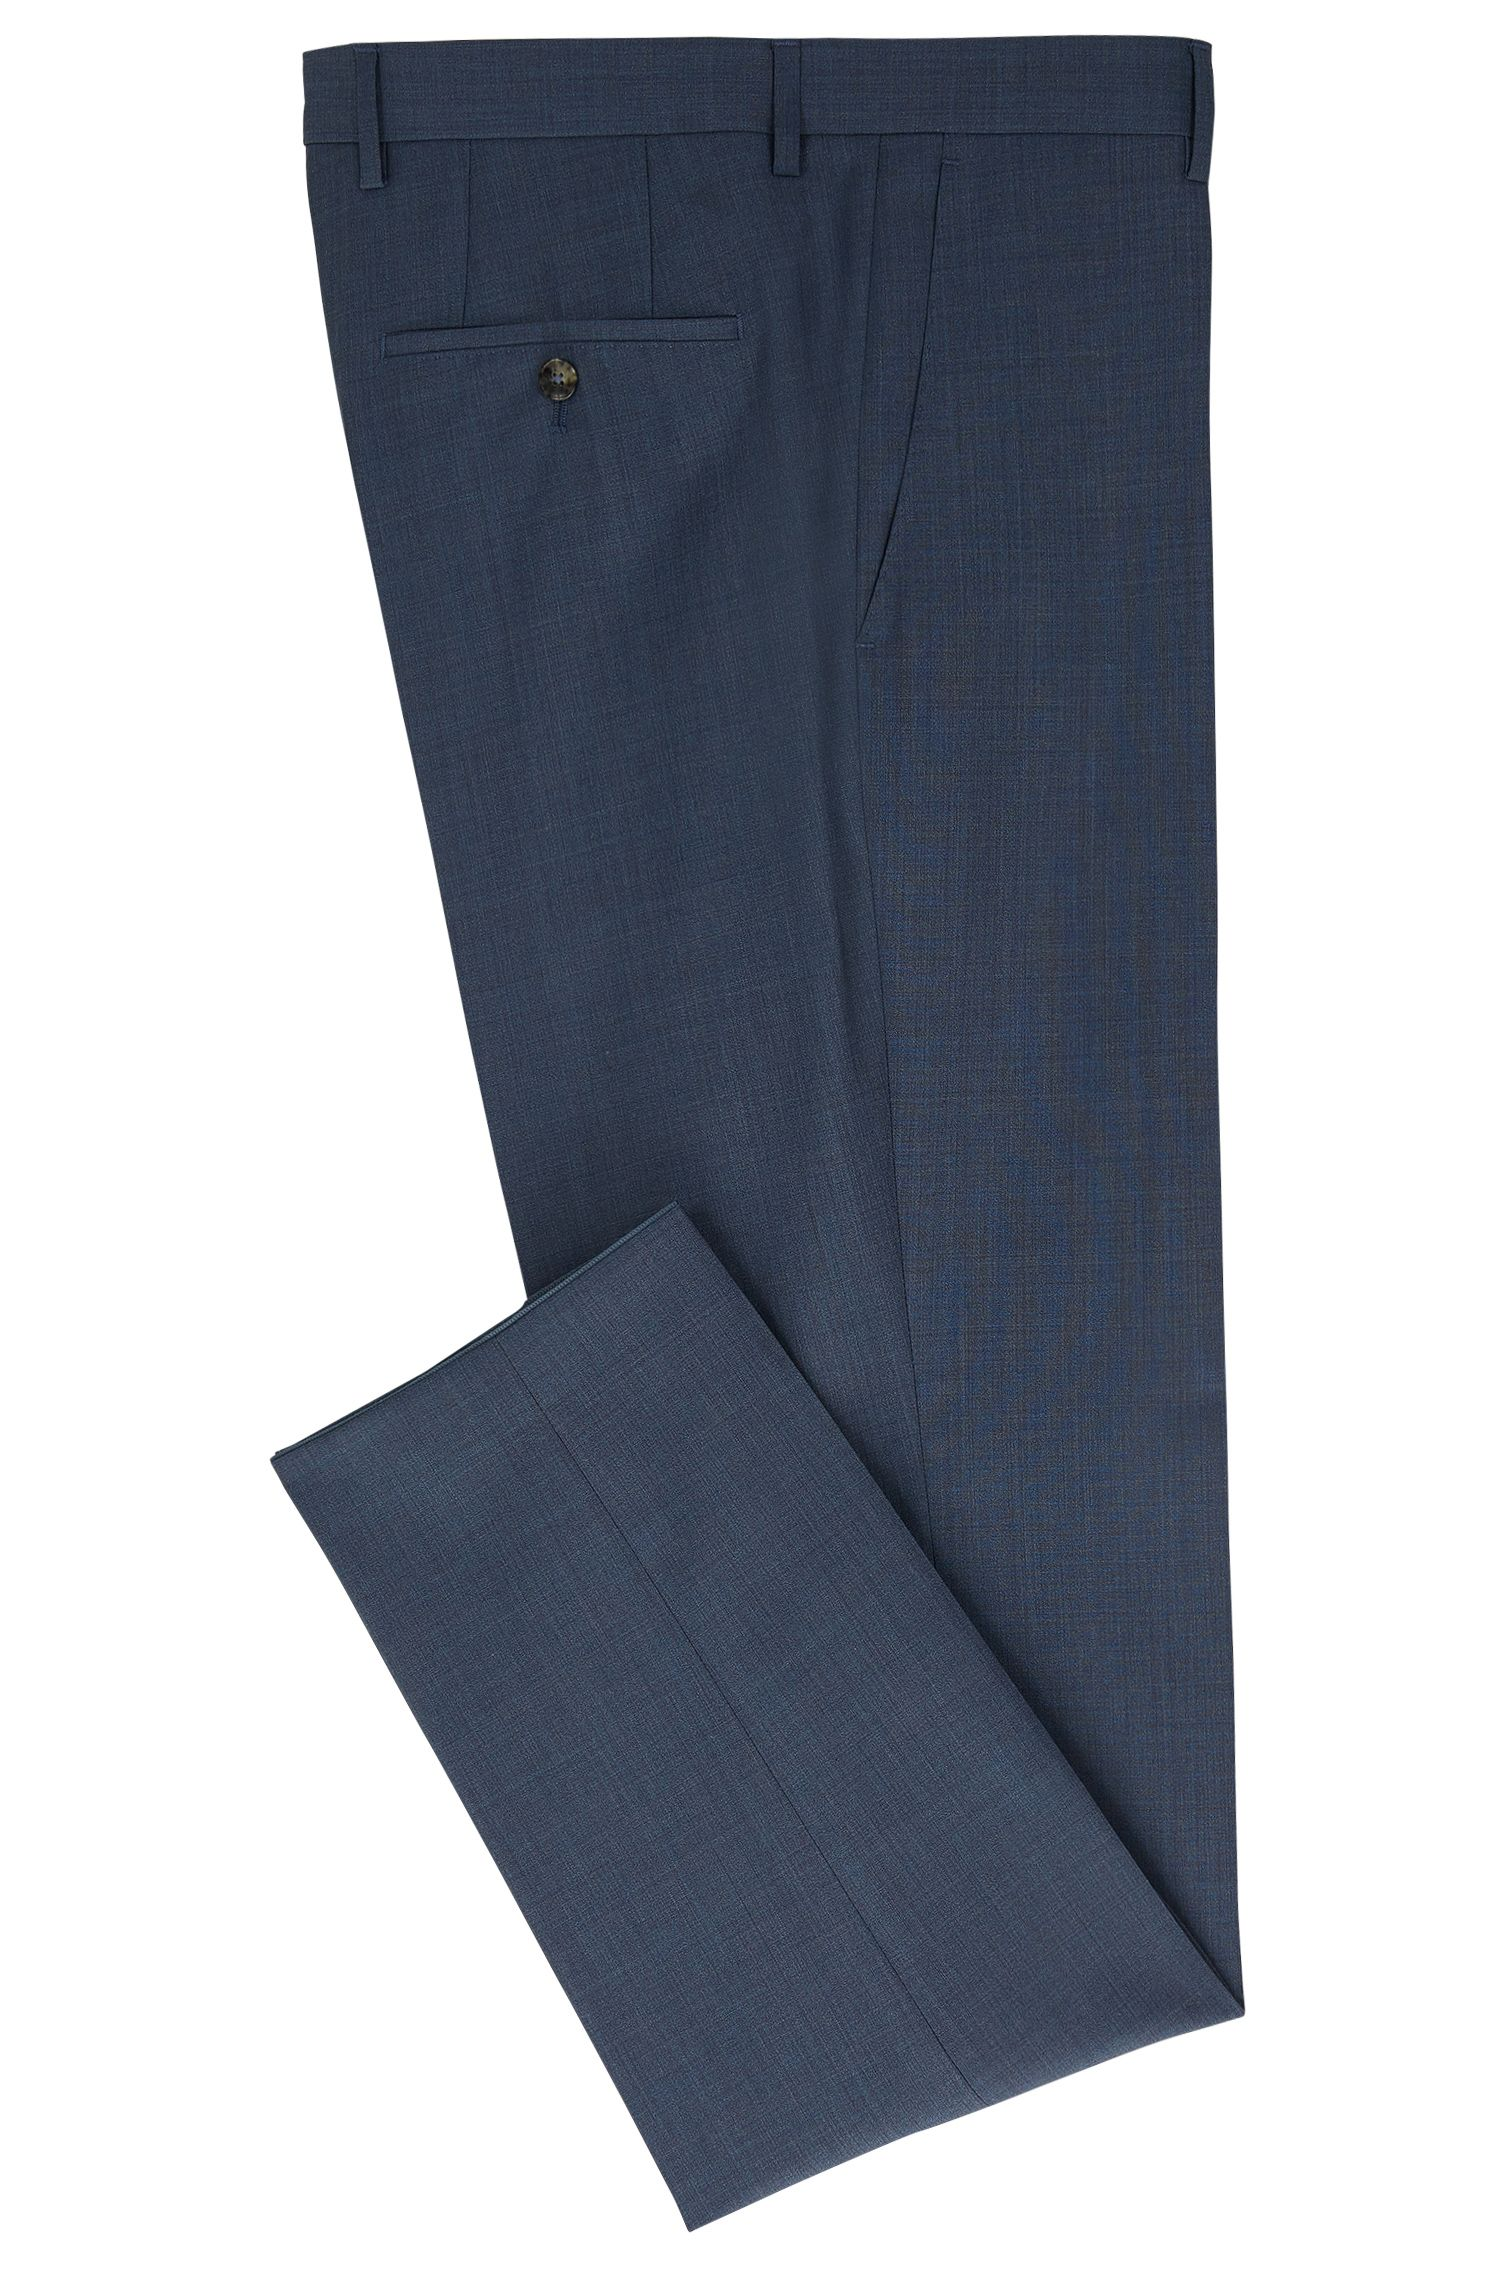 Virgin Wool Cashmere Dress Pant, Slim Fit | Benso